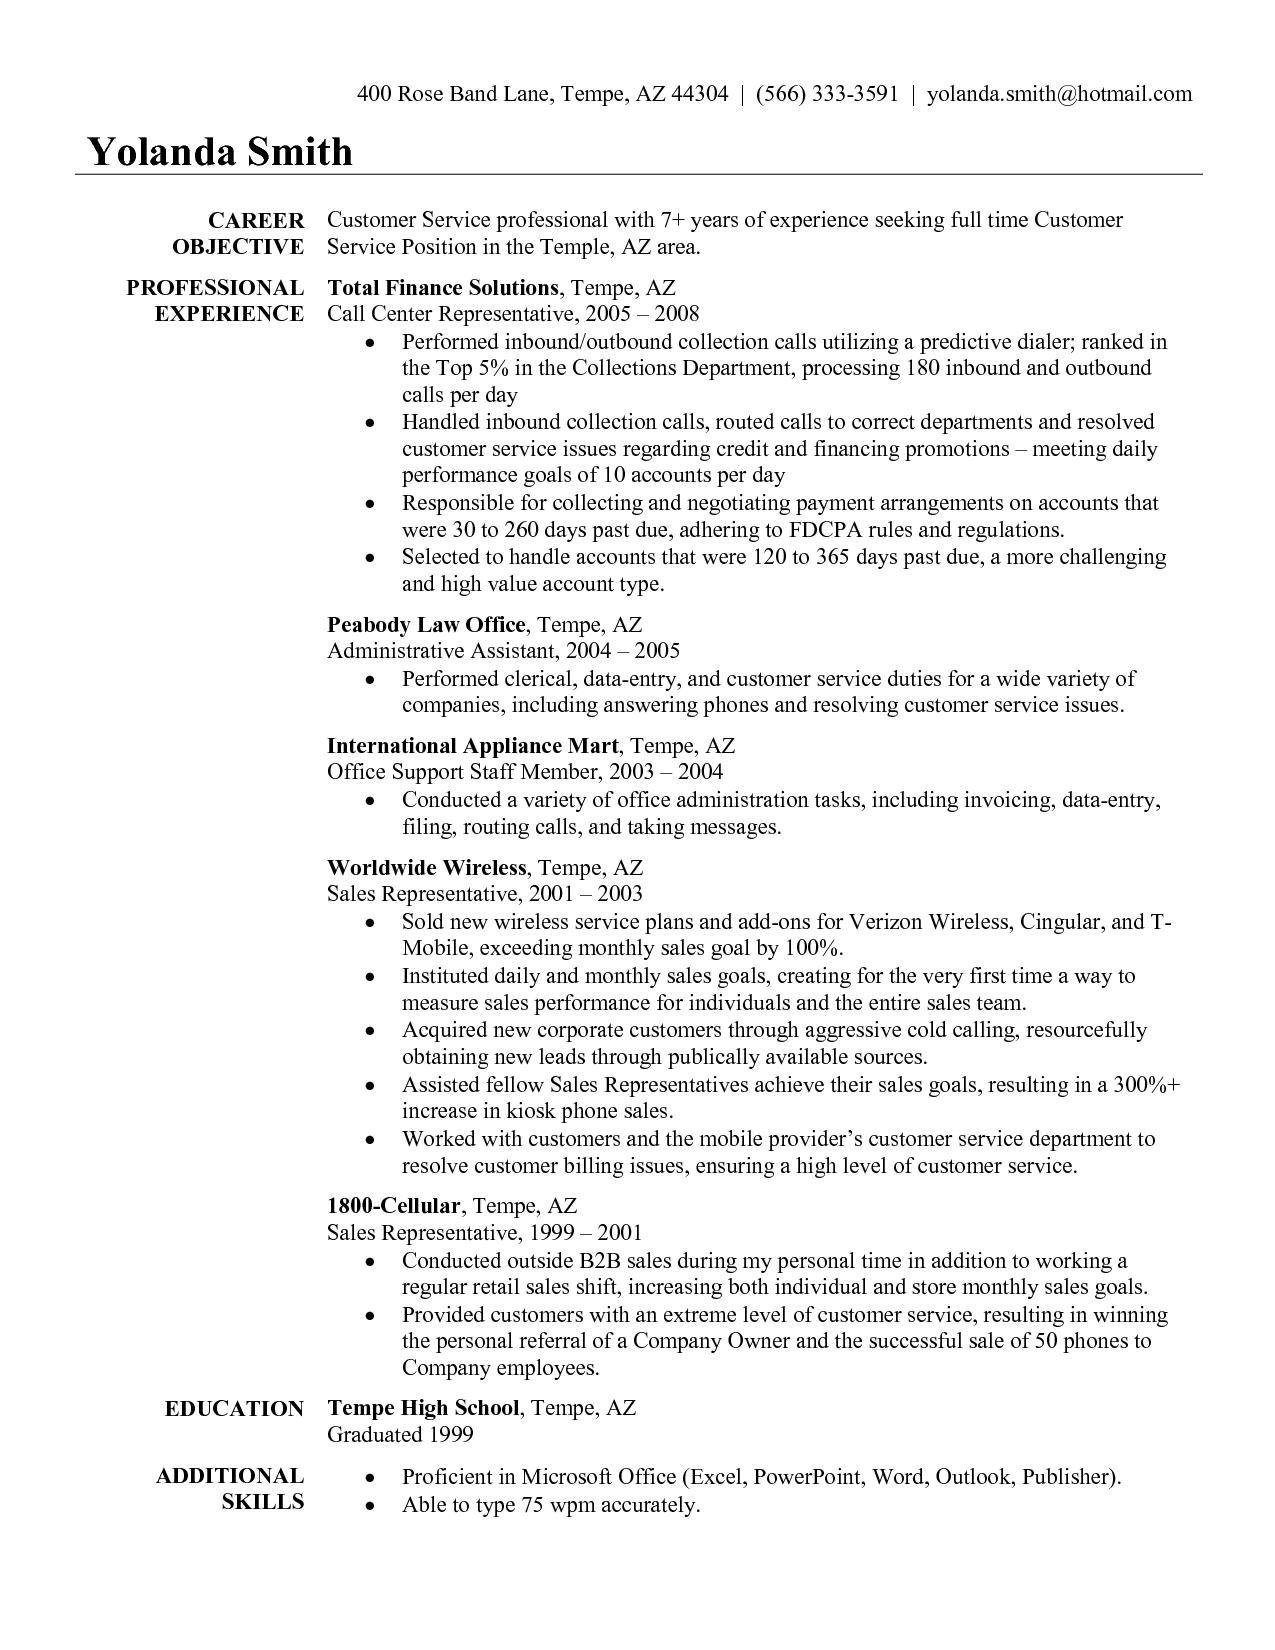 Traffic Customer Resume Examples,,customer service resume examples,,customer  service resume examples